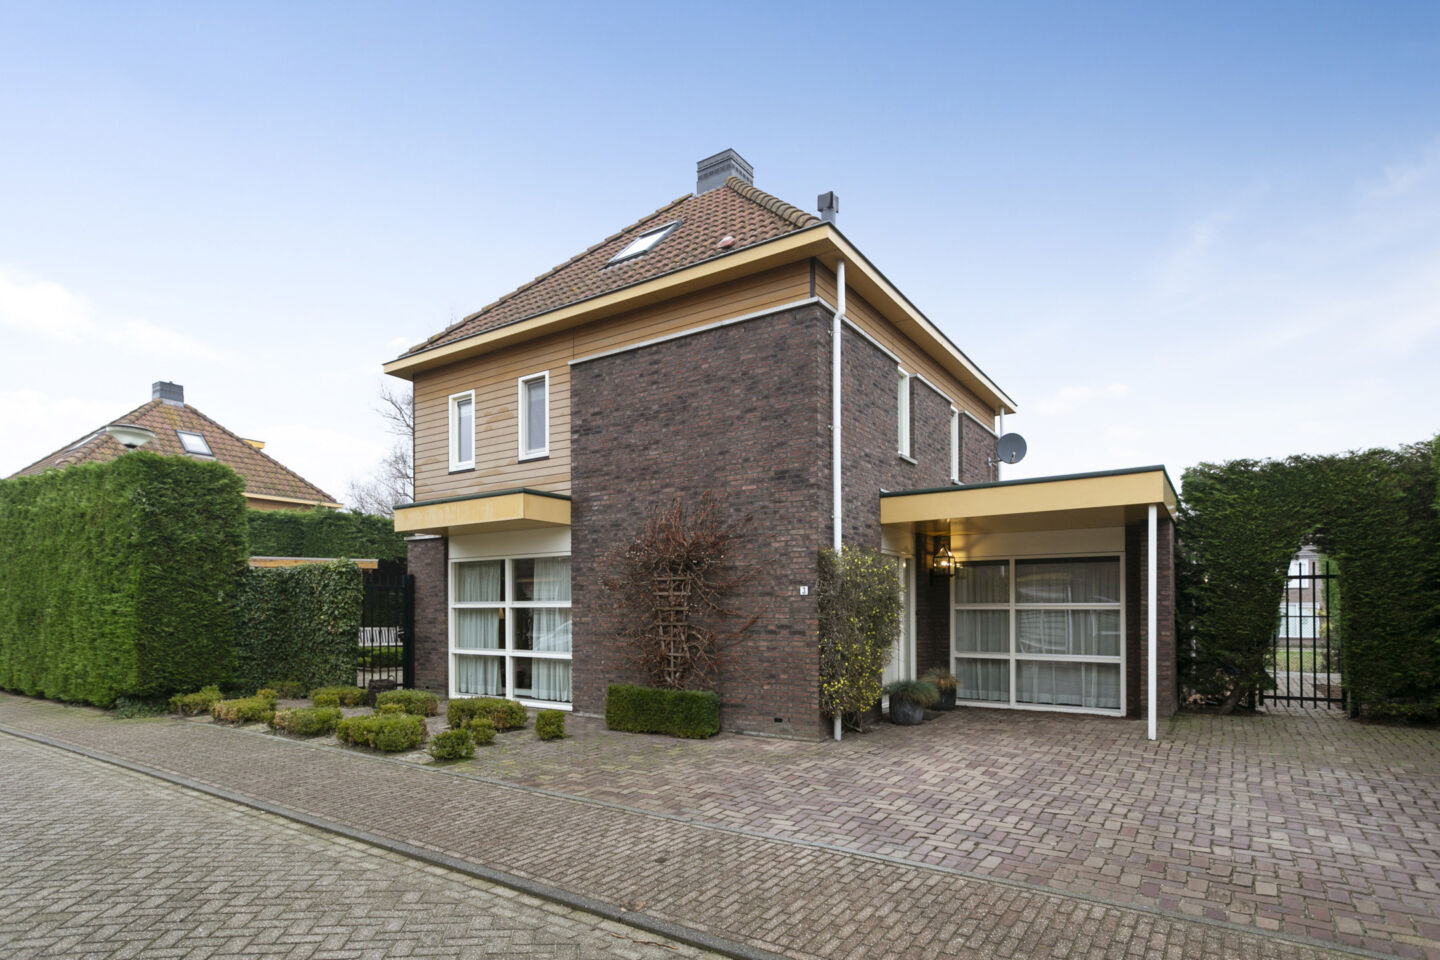 7245-jan_de_preestraat_3-steenbergen-3721028305